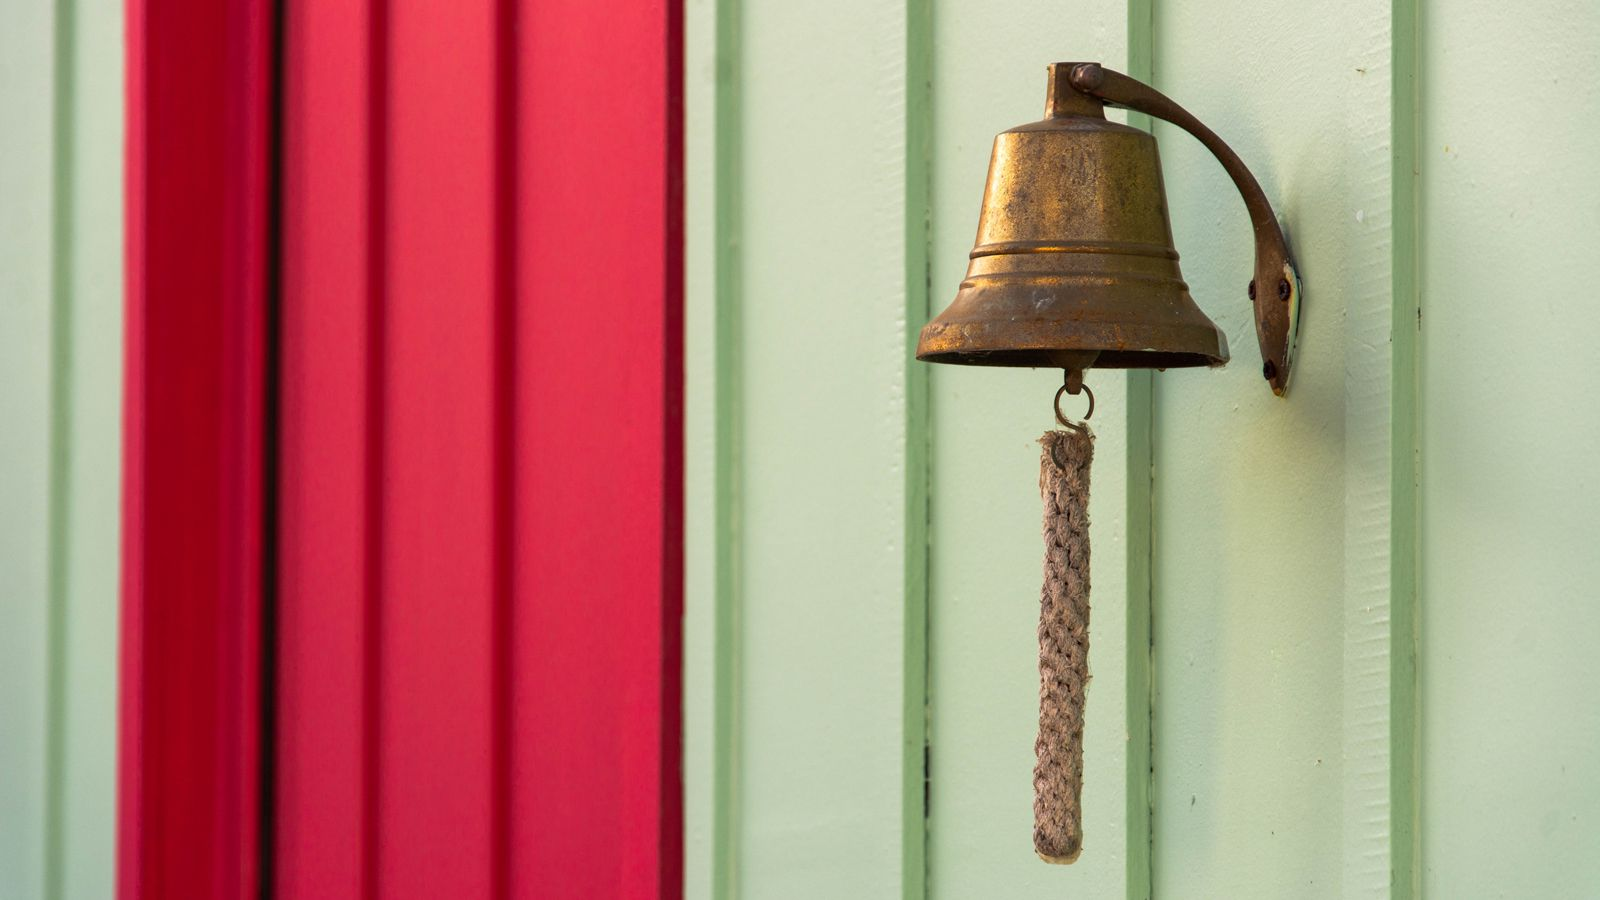 Image of a brass bell on a wall